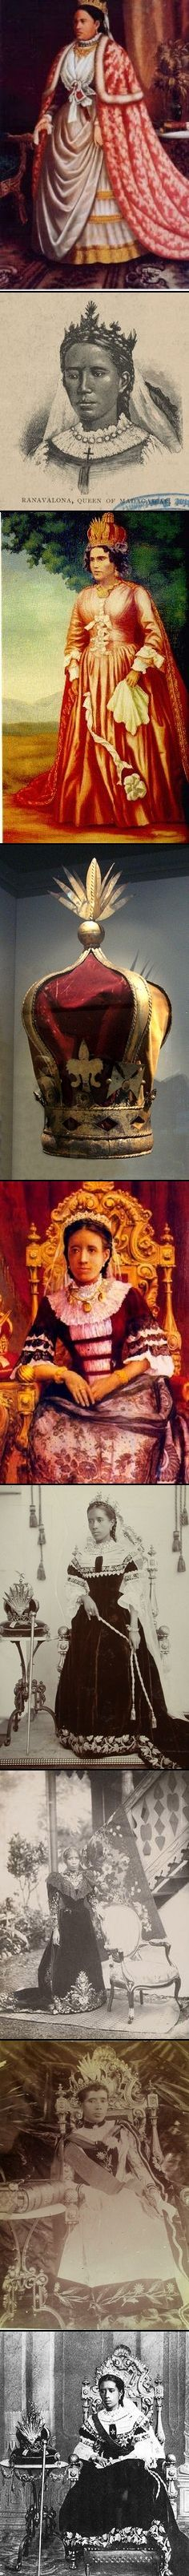 Ranavalona III (November 22, 1861 – May 23, 1917) was the last sovereign of the Kingdom of Madagascar. She ruled from July 30, 1883 to February 28, 1897 in a reign marked by ongoing and ultimately futile efforts to resist the colonial designs of the government of France. As a young woman she was selected from among several andriana (nobles) qualified to succeed Queen Ranavalona II upon her death.